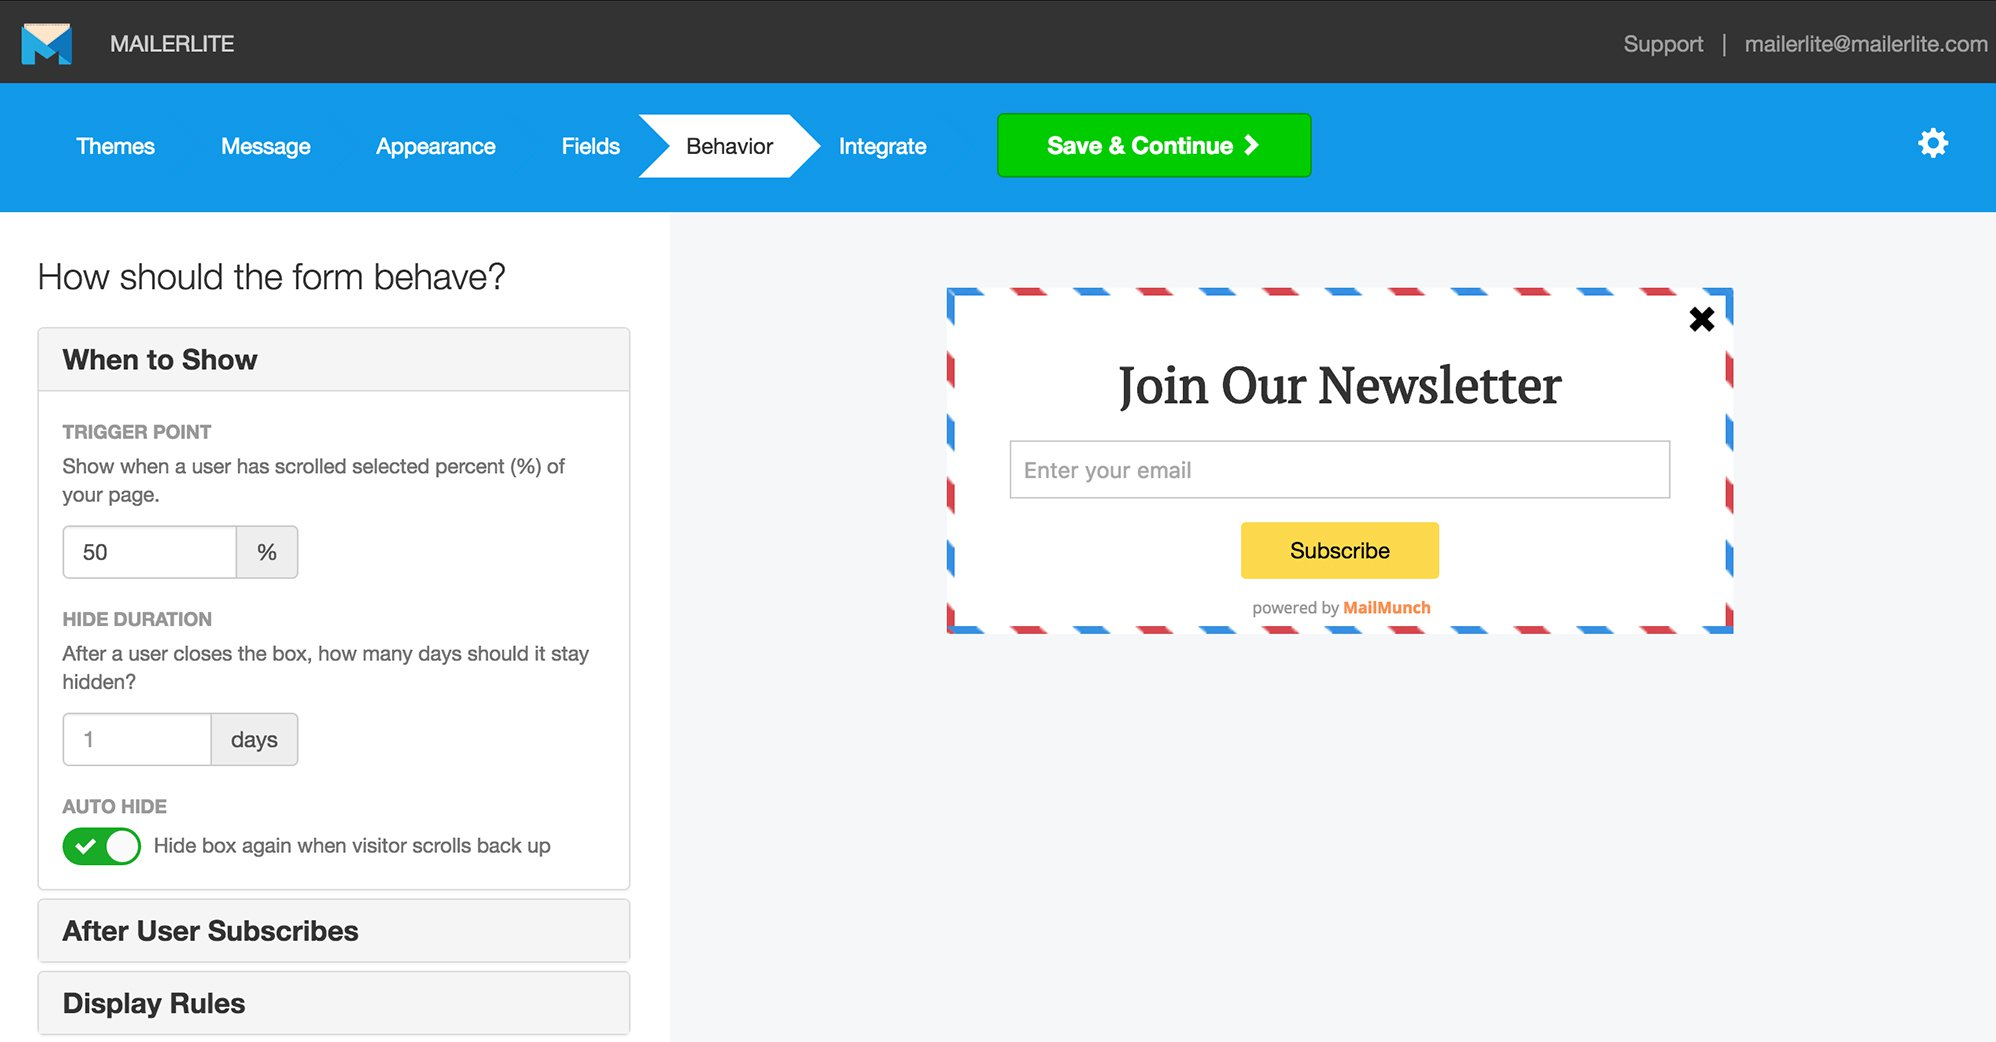 mailmunch subscribers advanced features mailerlite integration